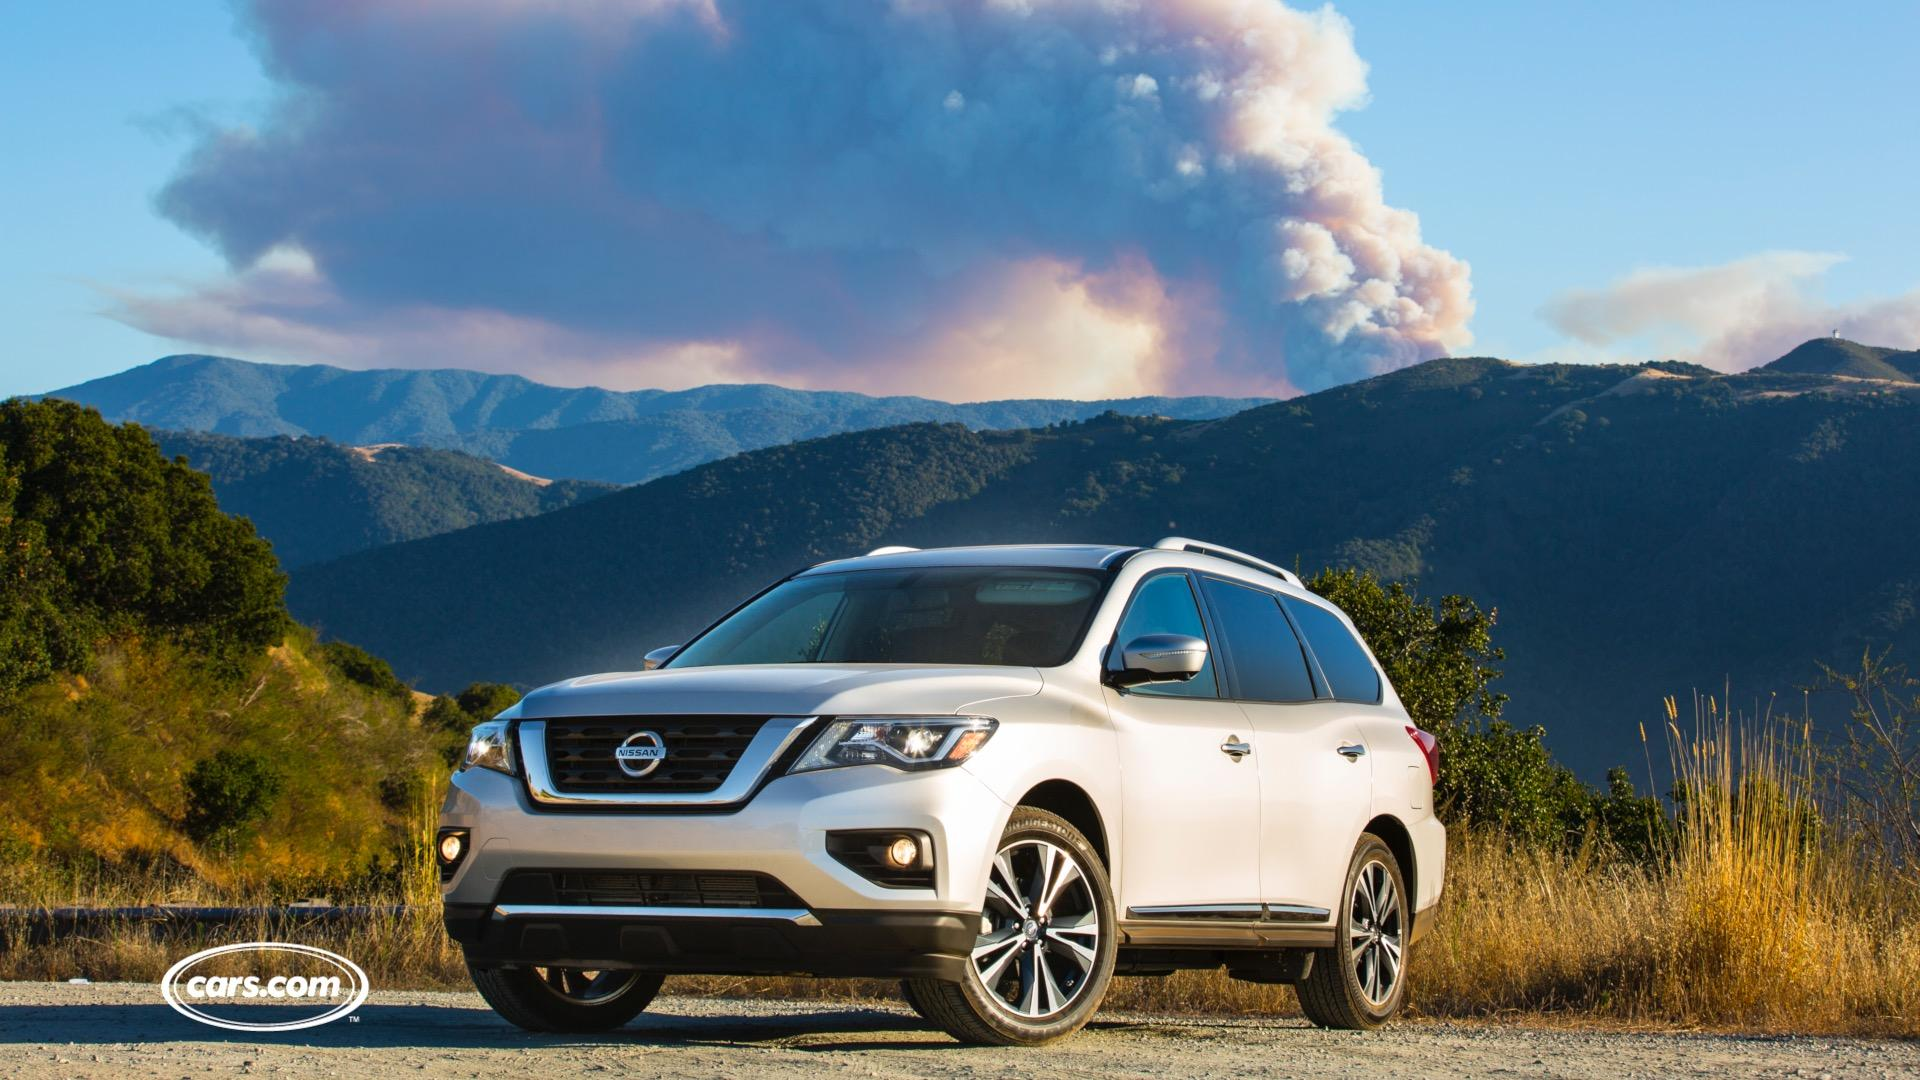 2017 Nissan Pathfinder Expert Reviews Specs and s